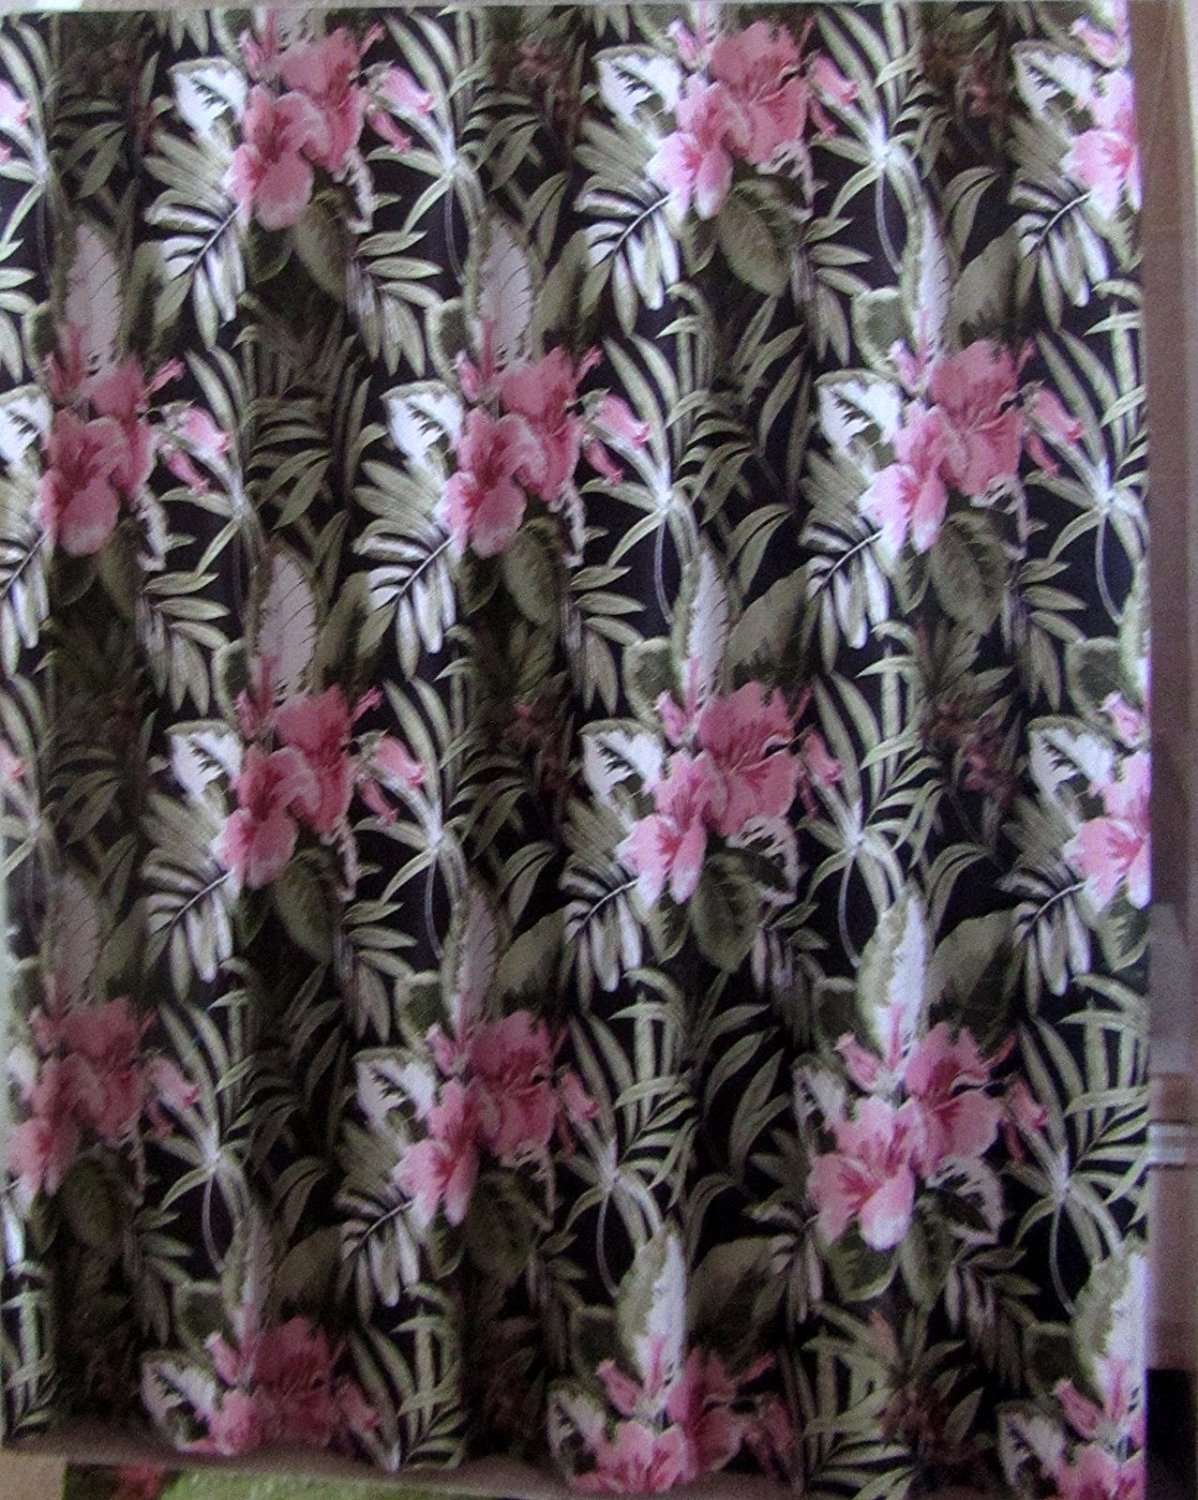 Buy Floral Hibiscus Tropical Fabric Shower Curtain Set w/12 Roll ...